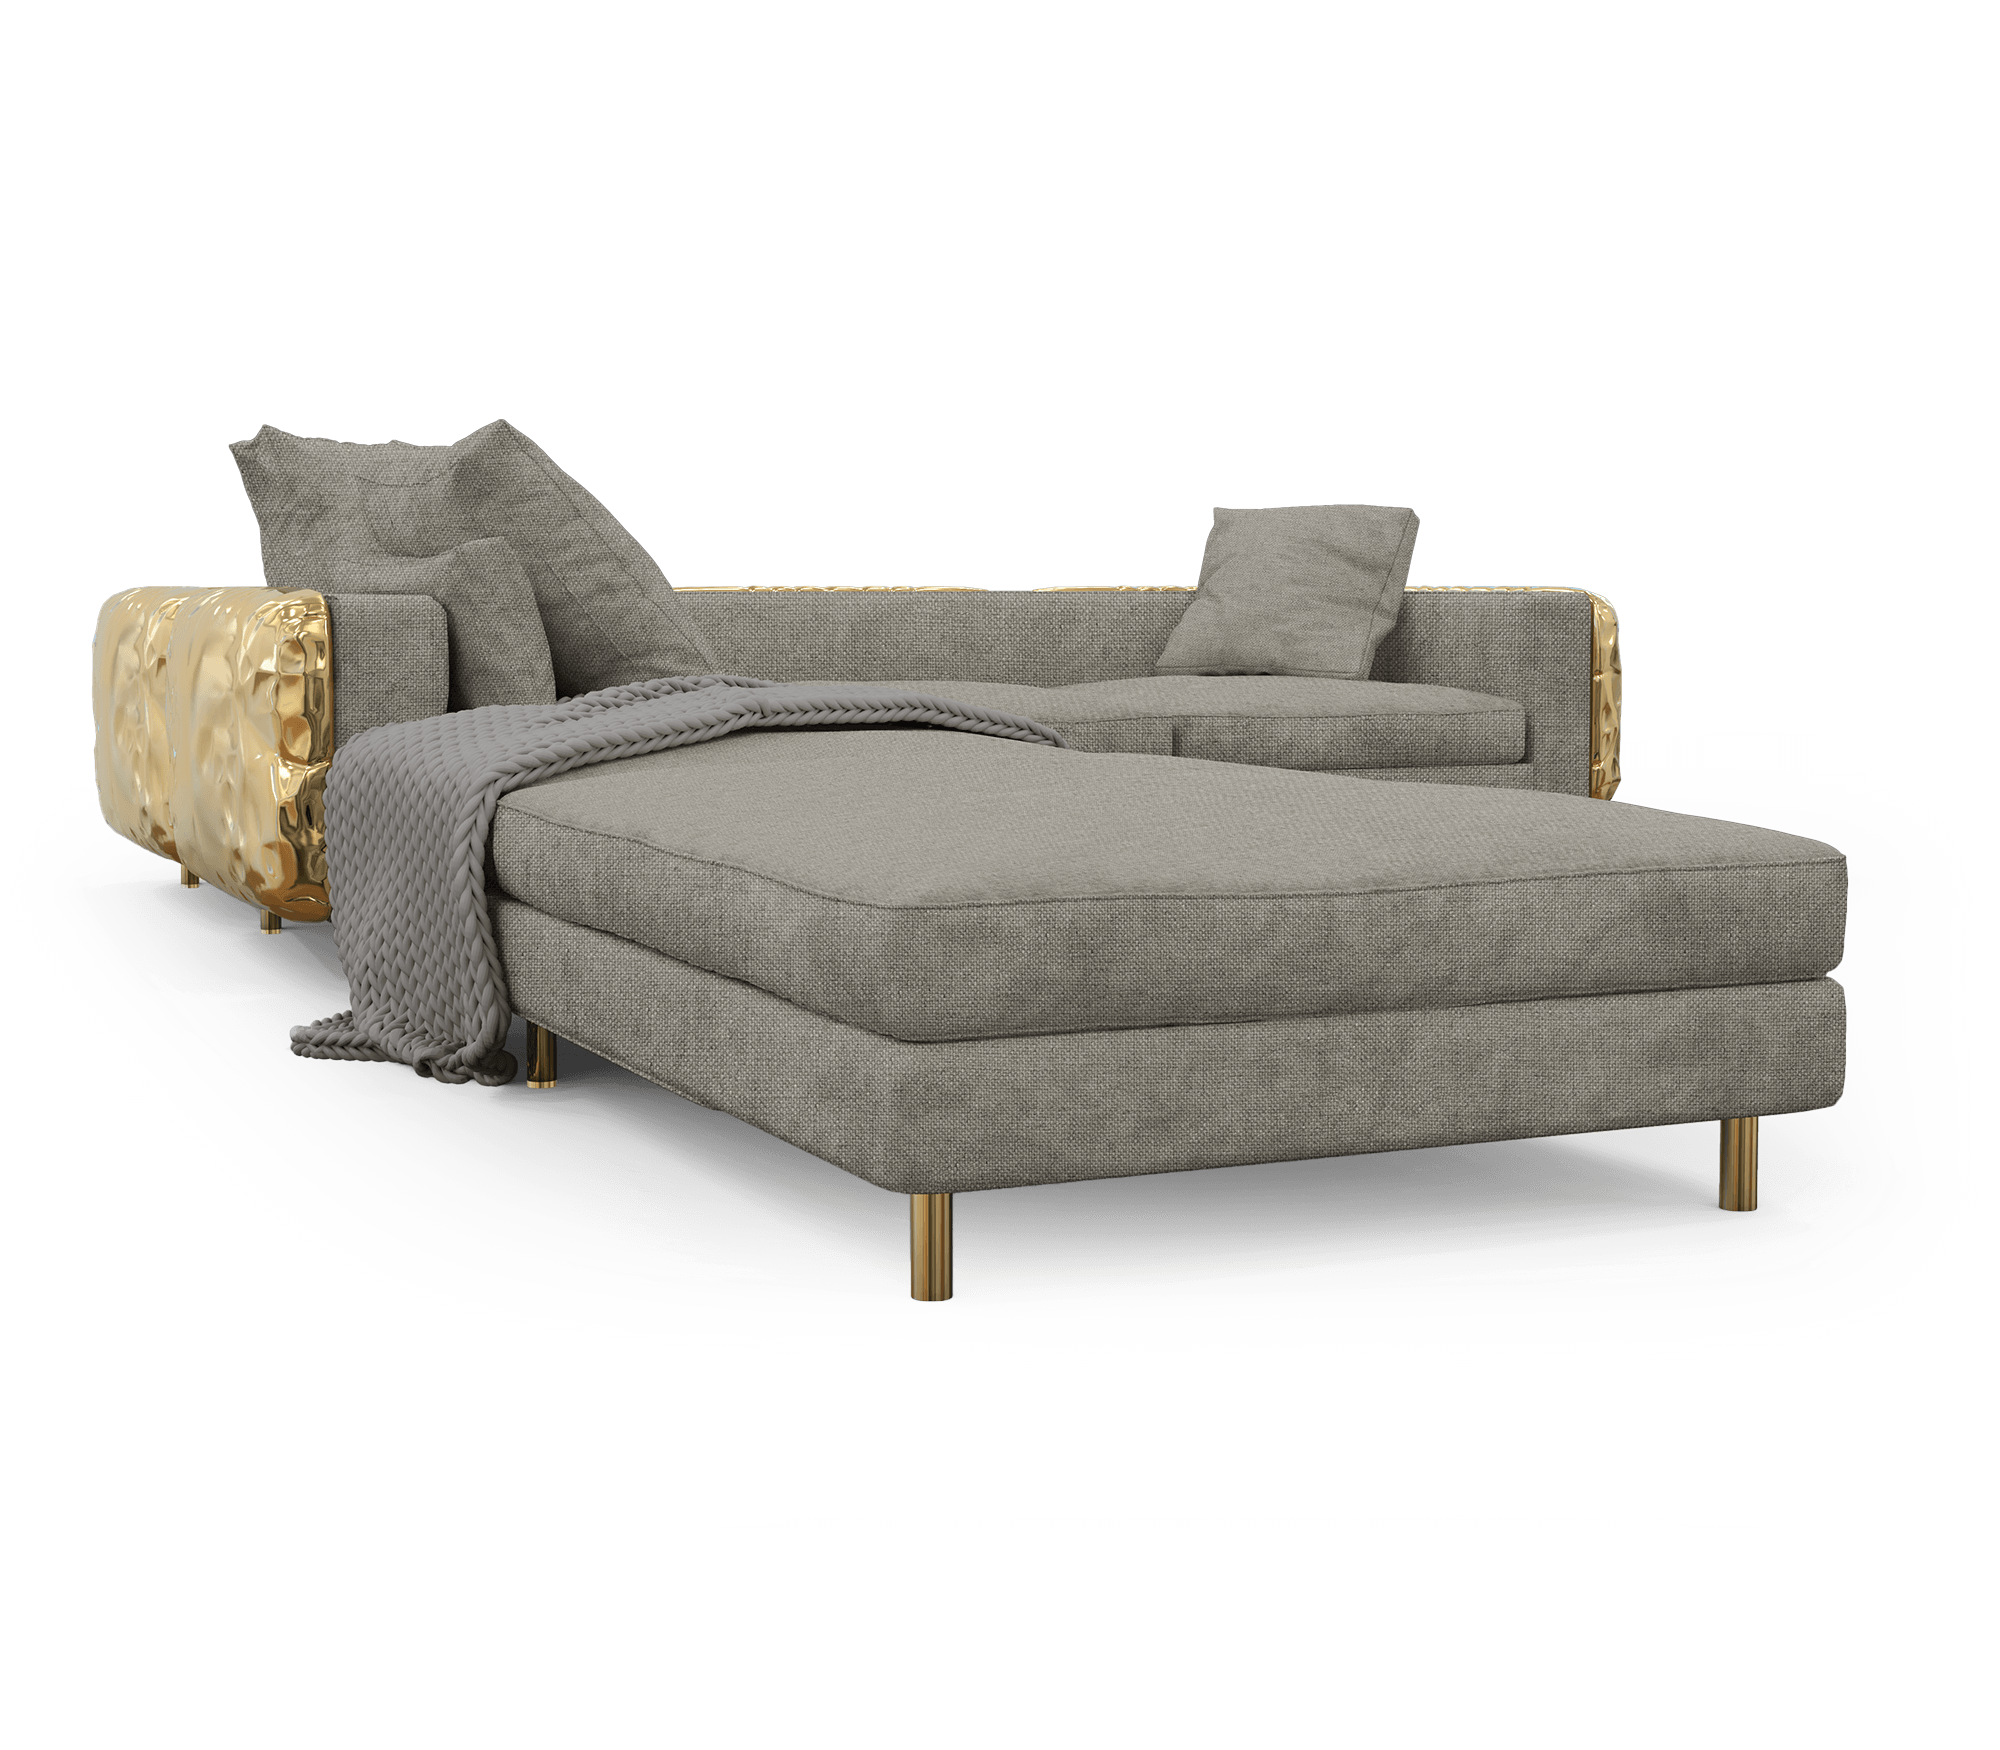 Imperfectio Modular Sofa by Boca do Lobo